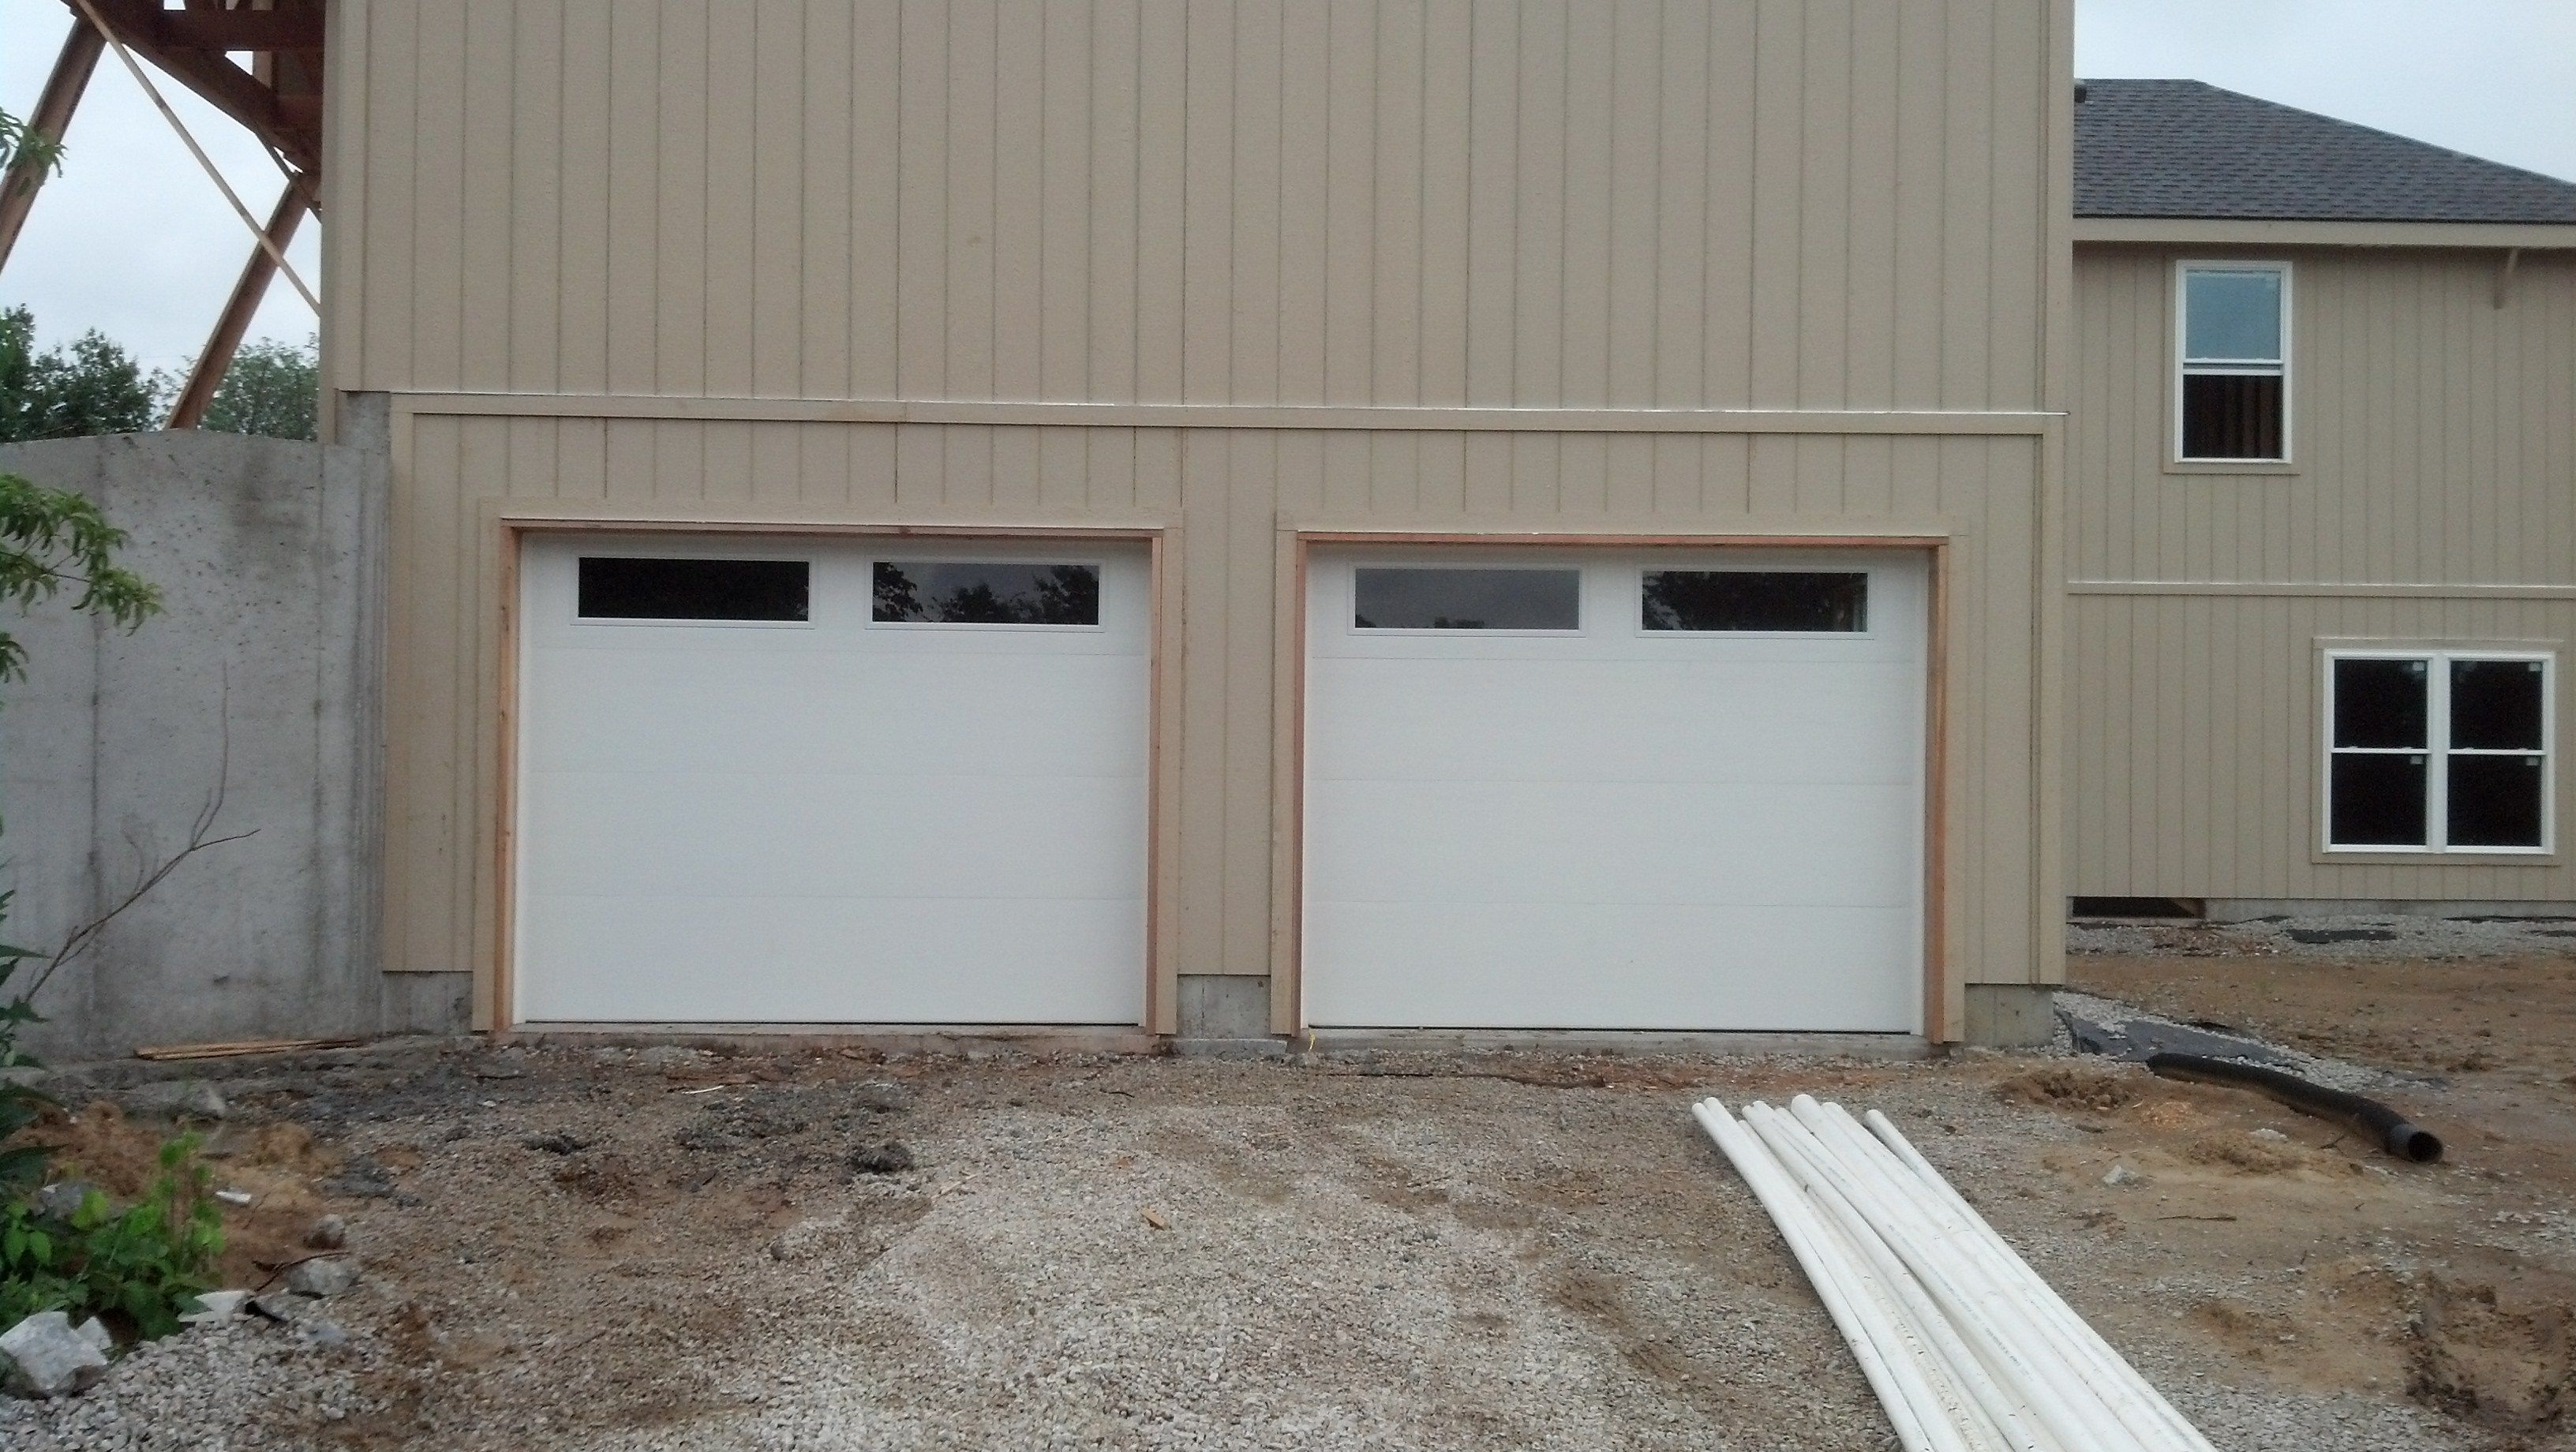 Clopay premium series classic collection flush style long for Buy clopay garage doors online